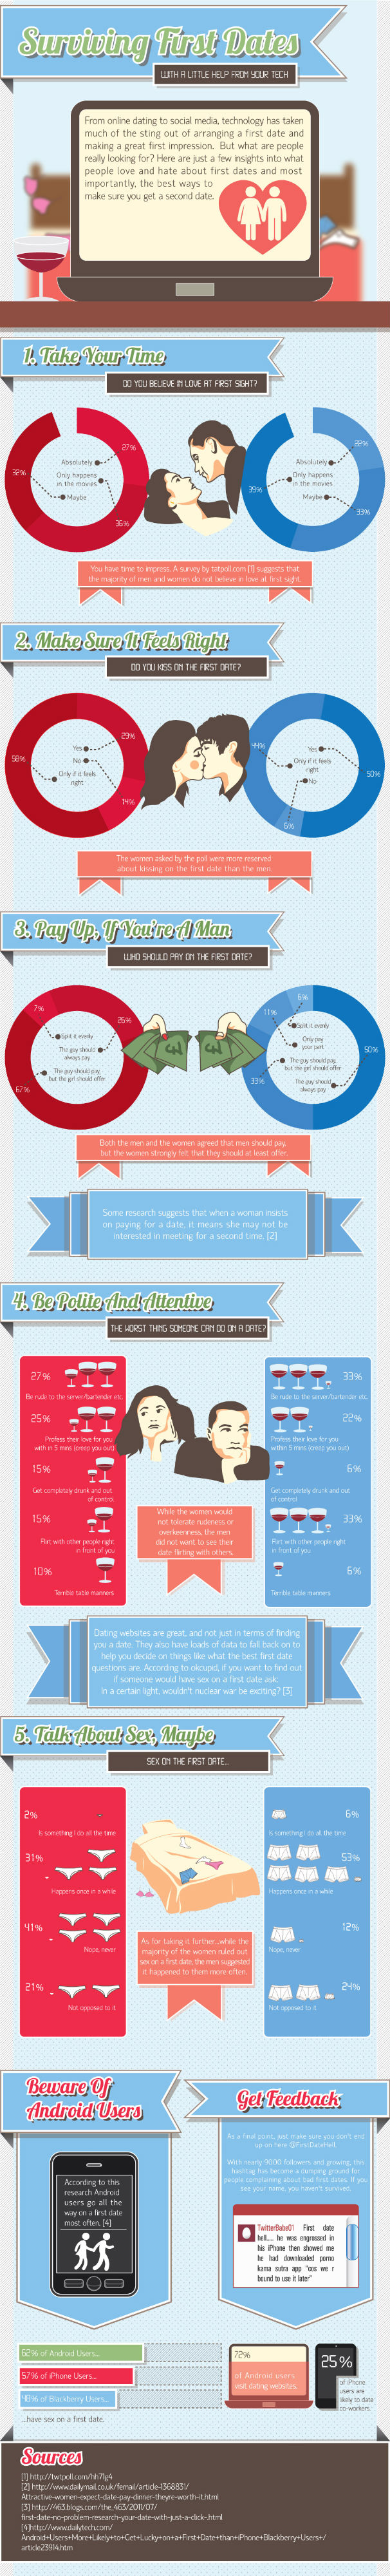 First Date Survival Guide (Infographic)